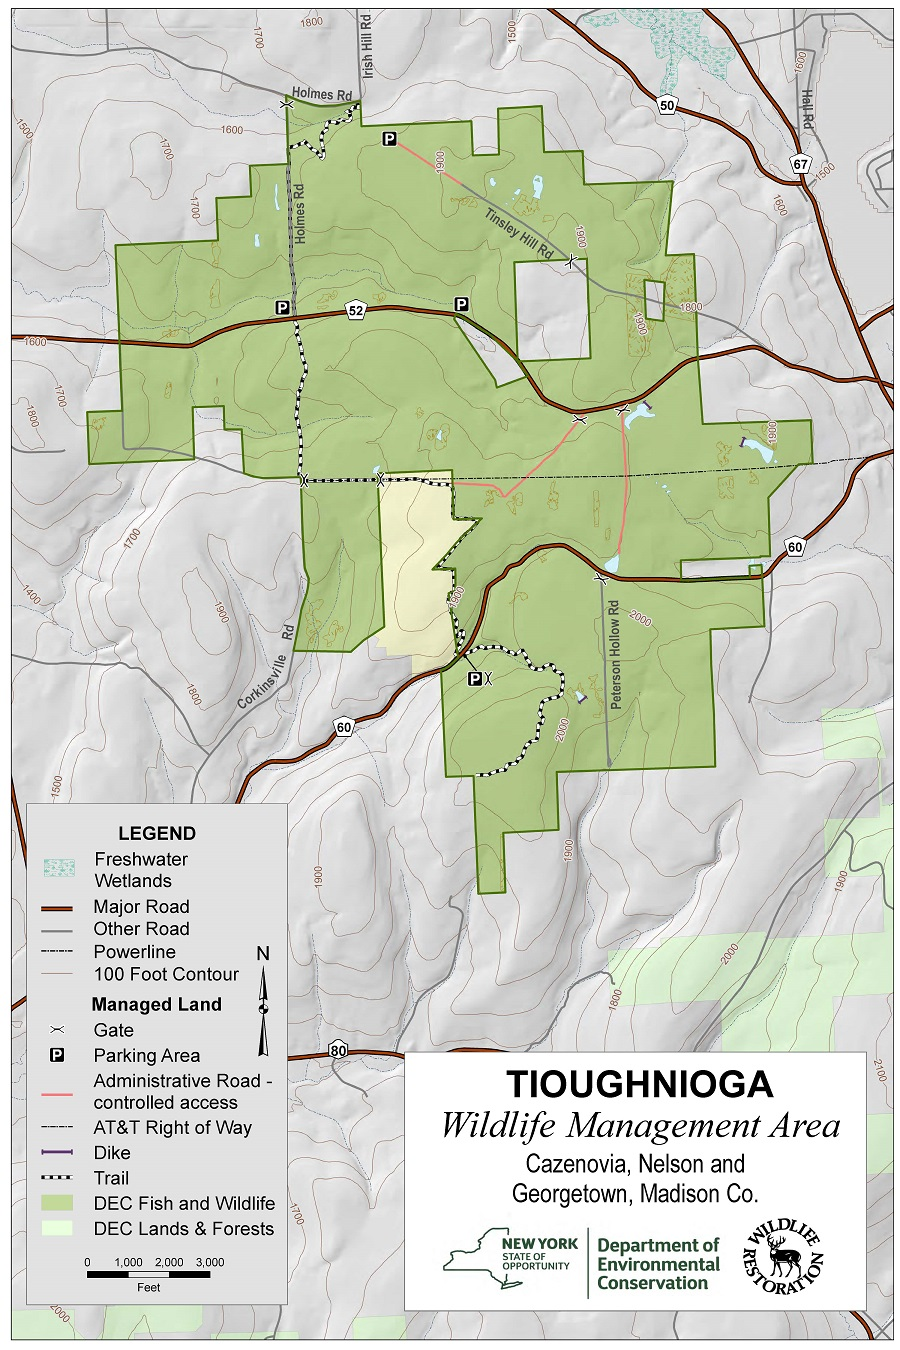 Tioughnioga Wildlife Management Area Map